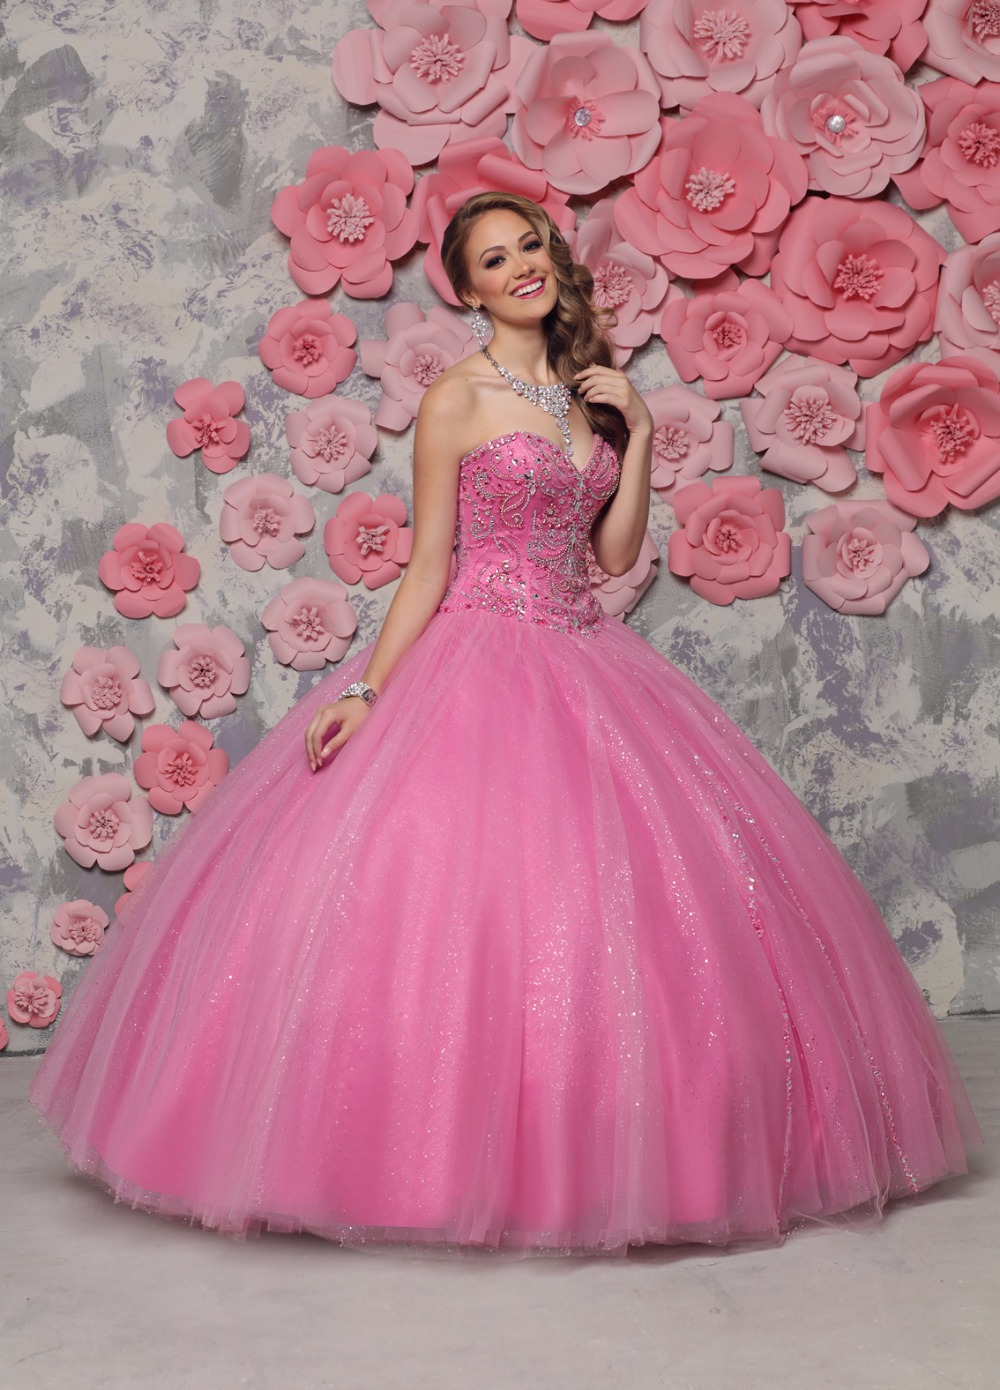 Hot Pink 2017 Ball Gown Prom Quinceaneara Dresses ...